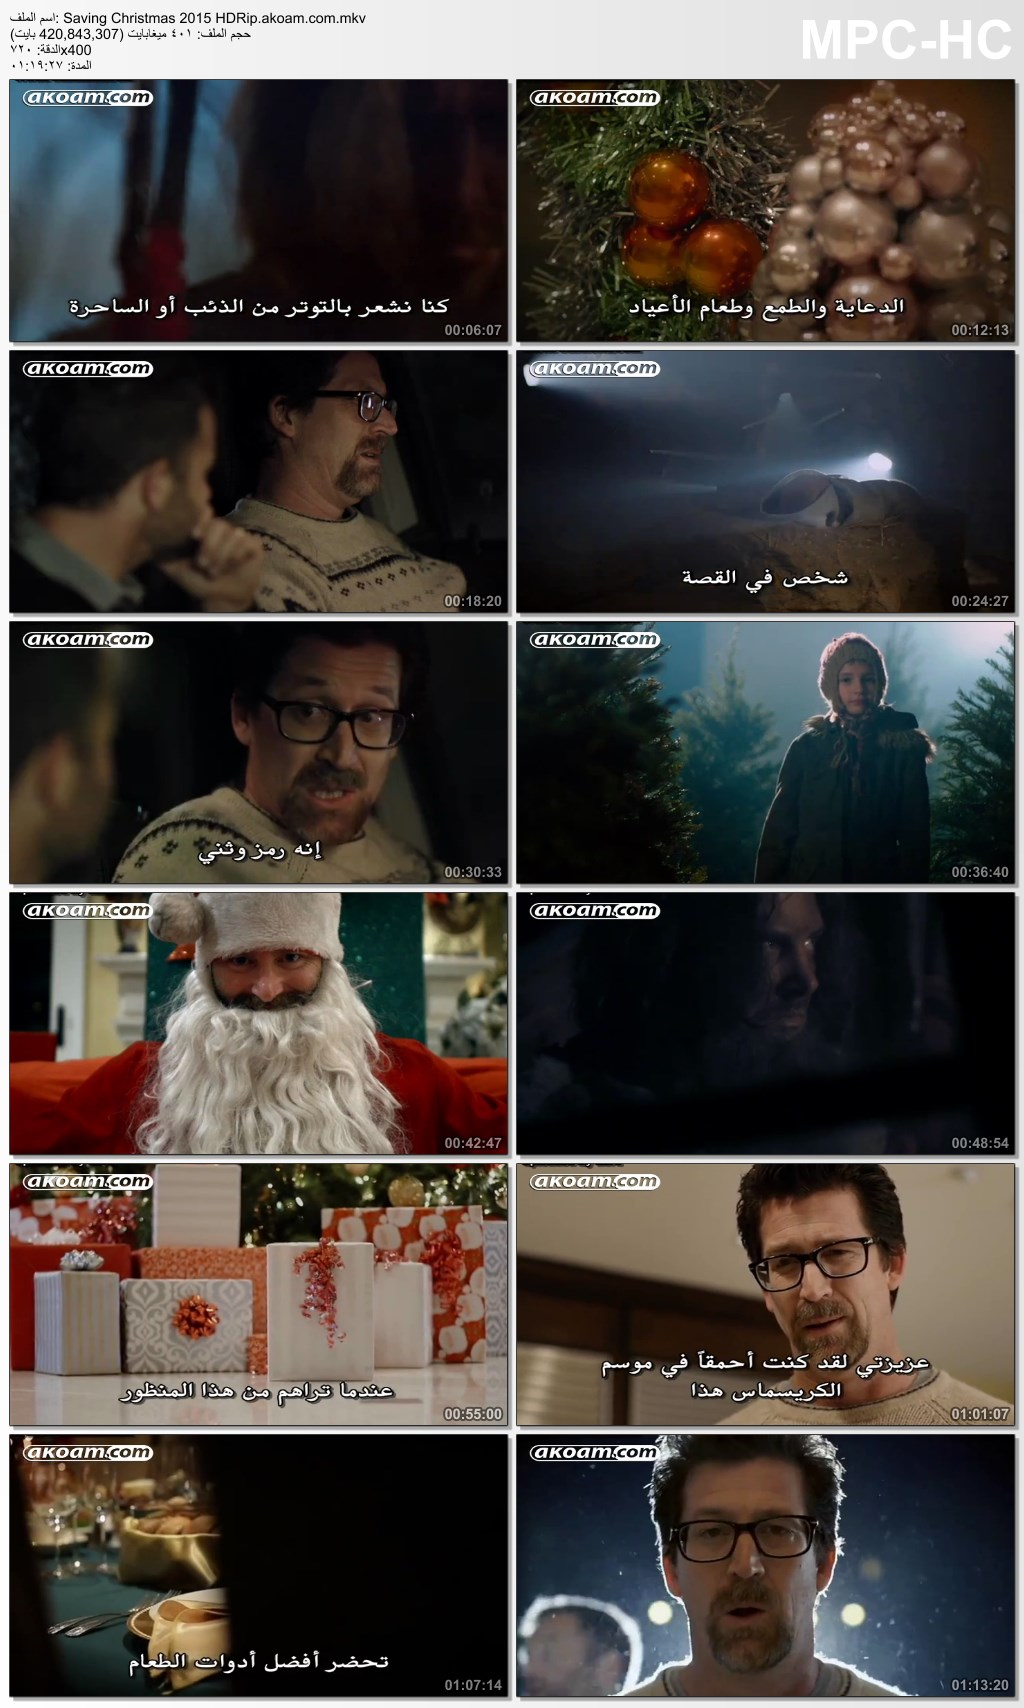 Saving Christmas,Saving Christmas 2015,الكوميديا,العائلي